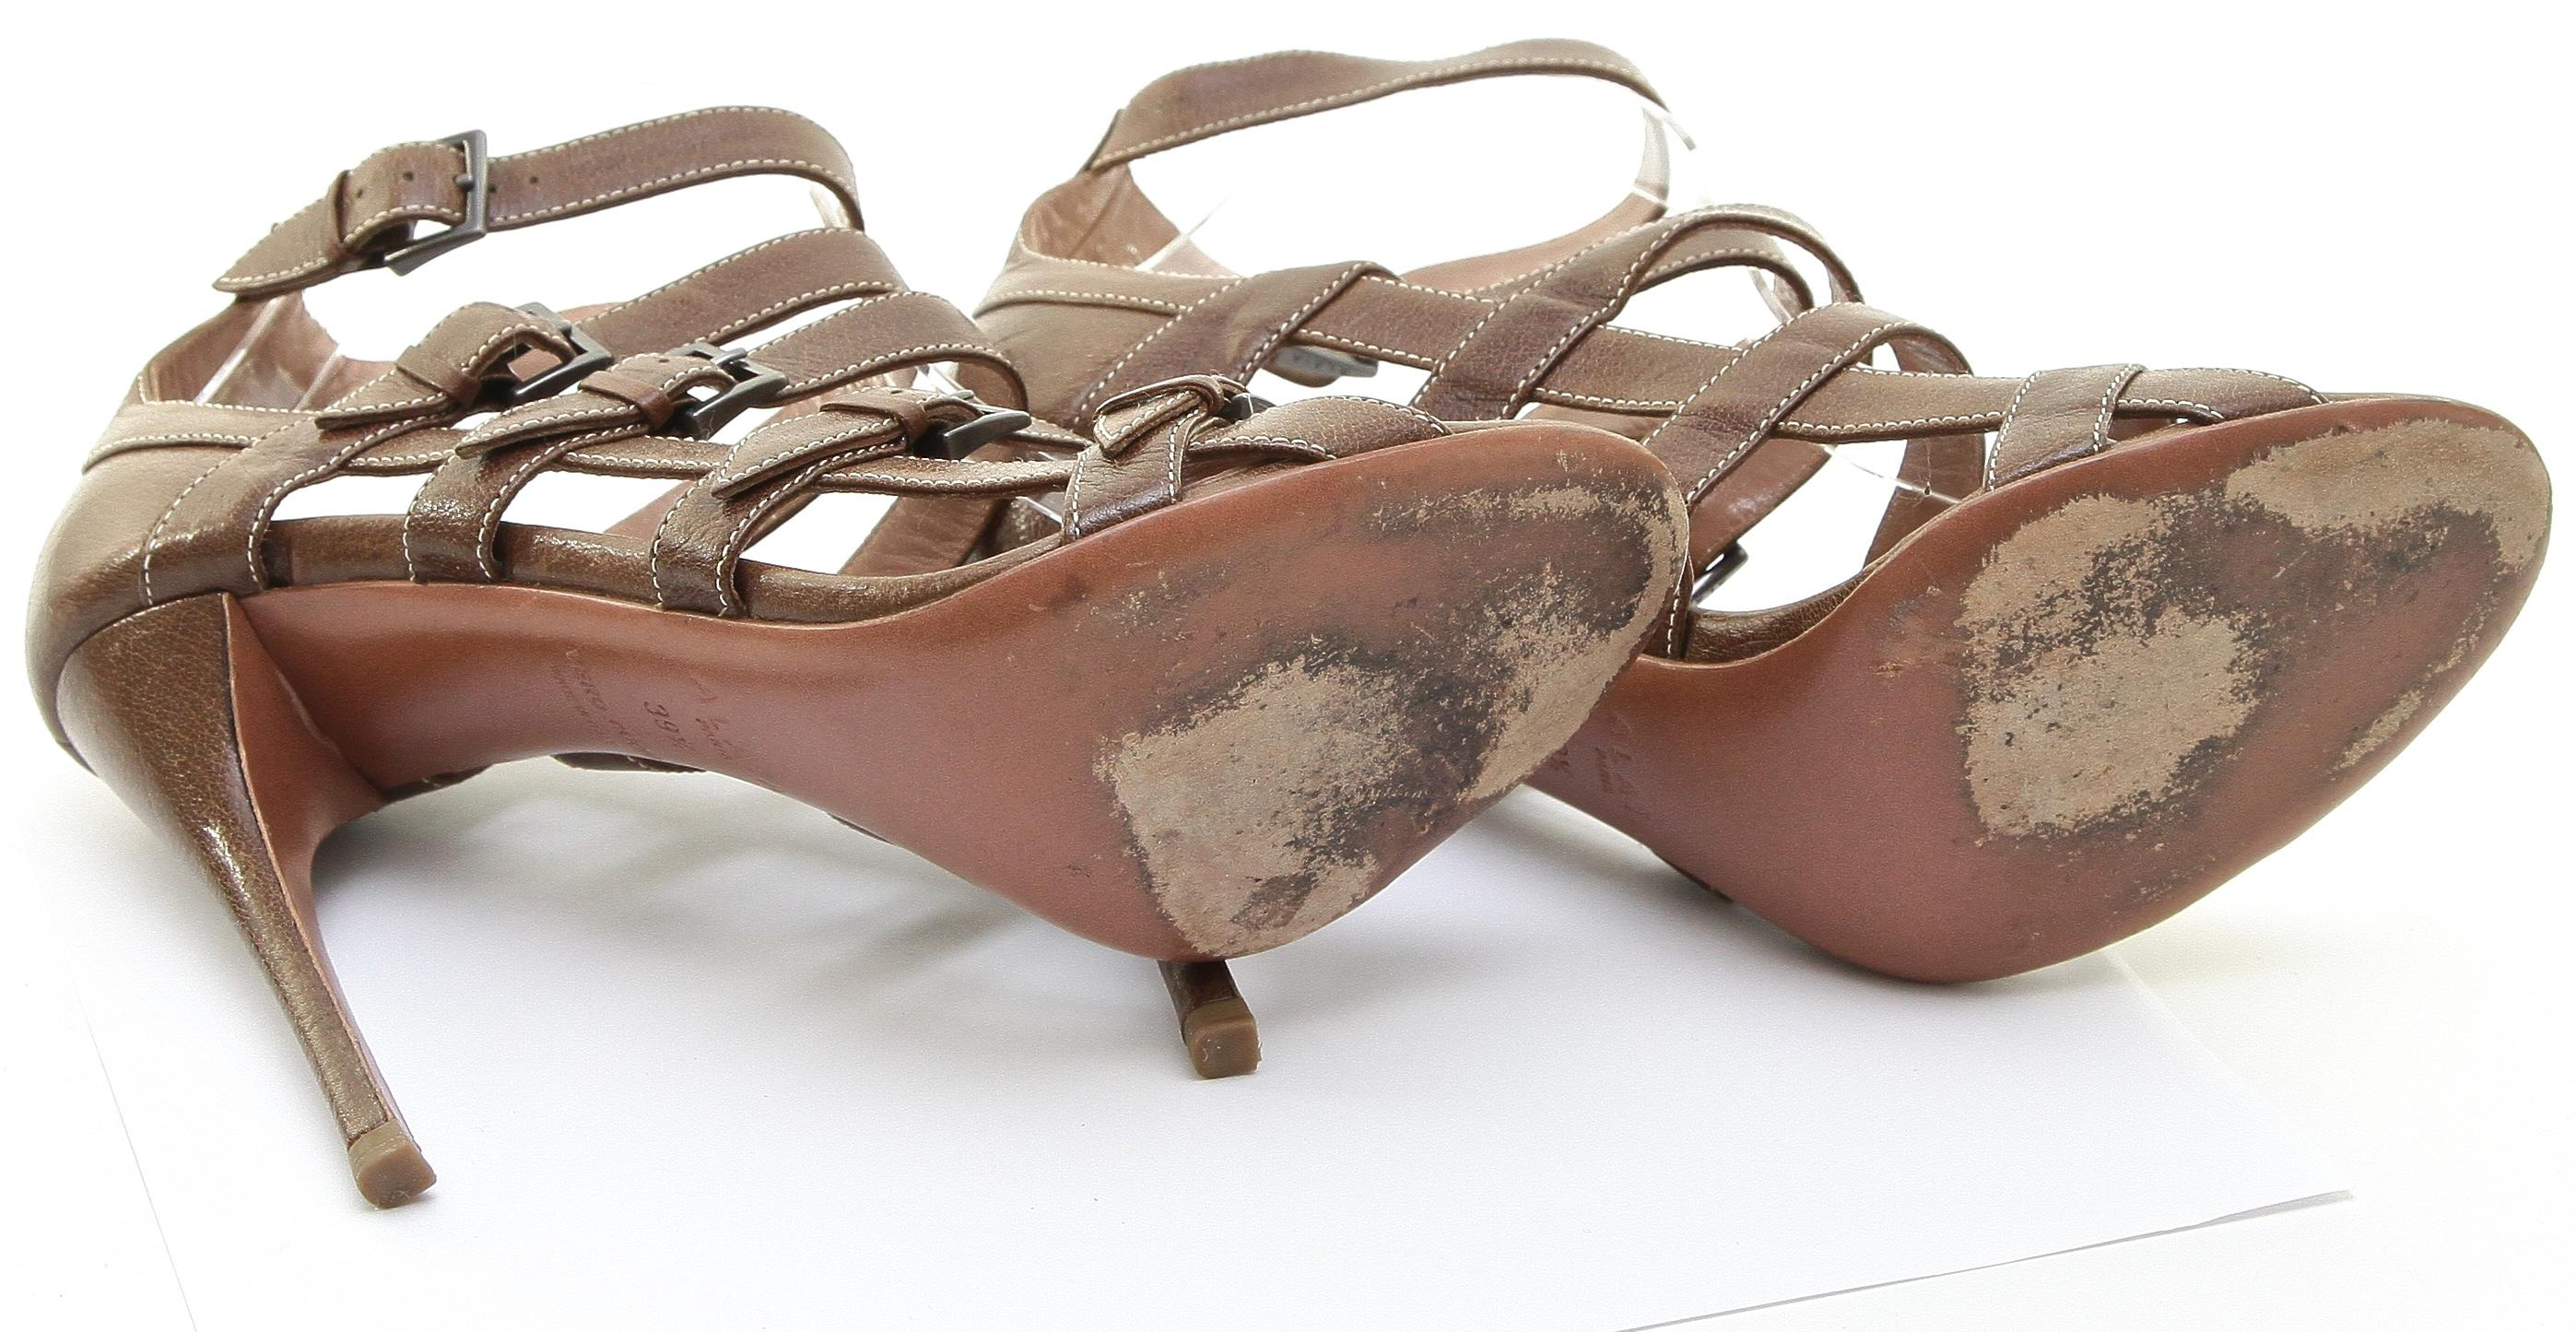 fb2b467e3f ... ALAÏA Brown Brown Brown Leather Gladiator Heel Open Toe White Strap  39.5 Sandals Size US 9.5